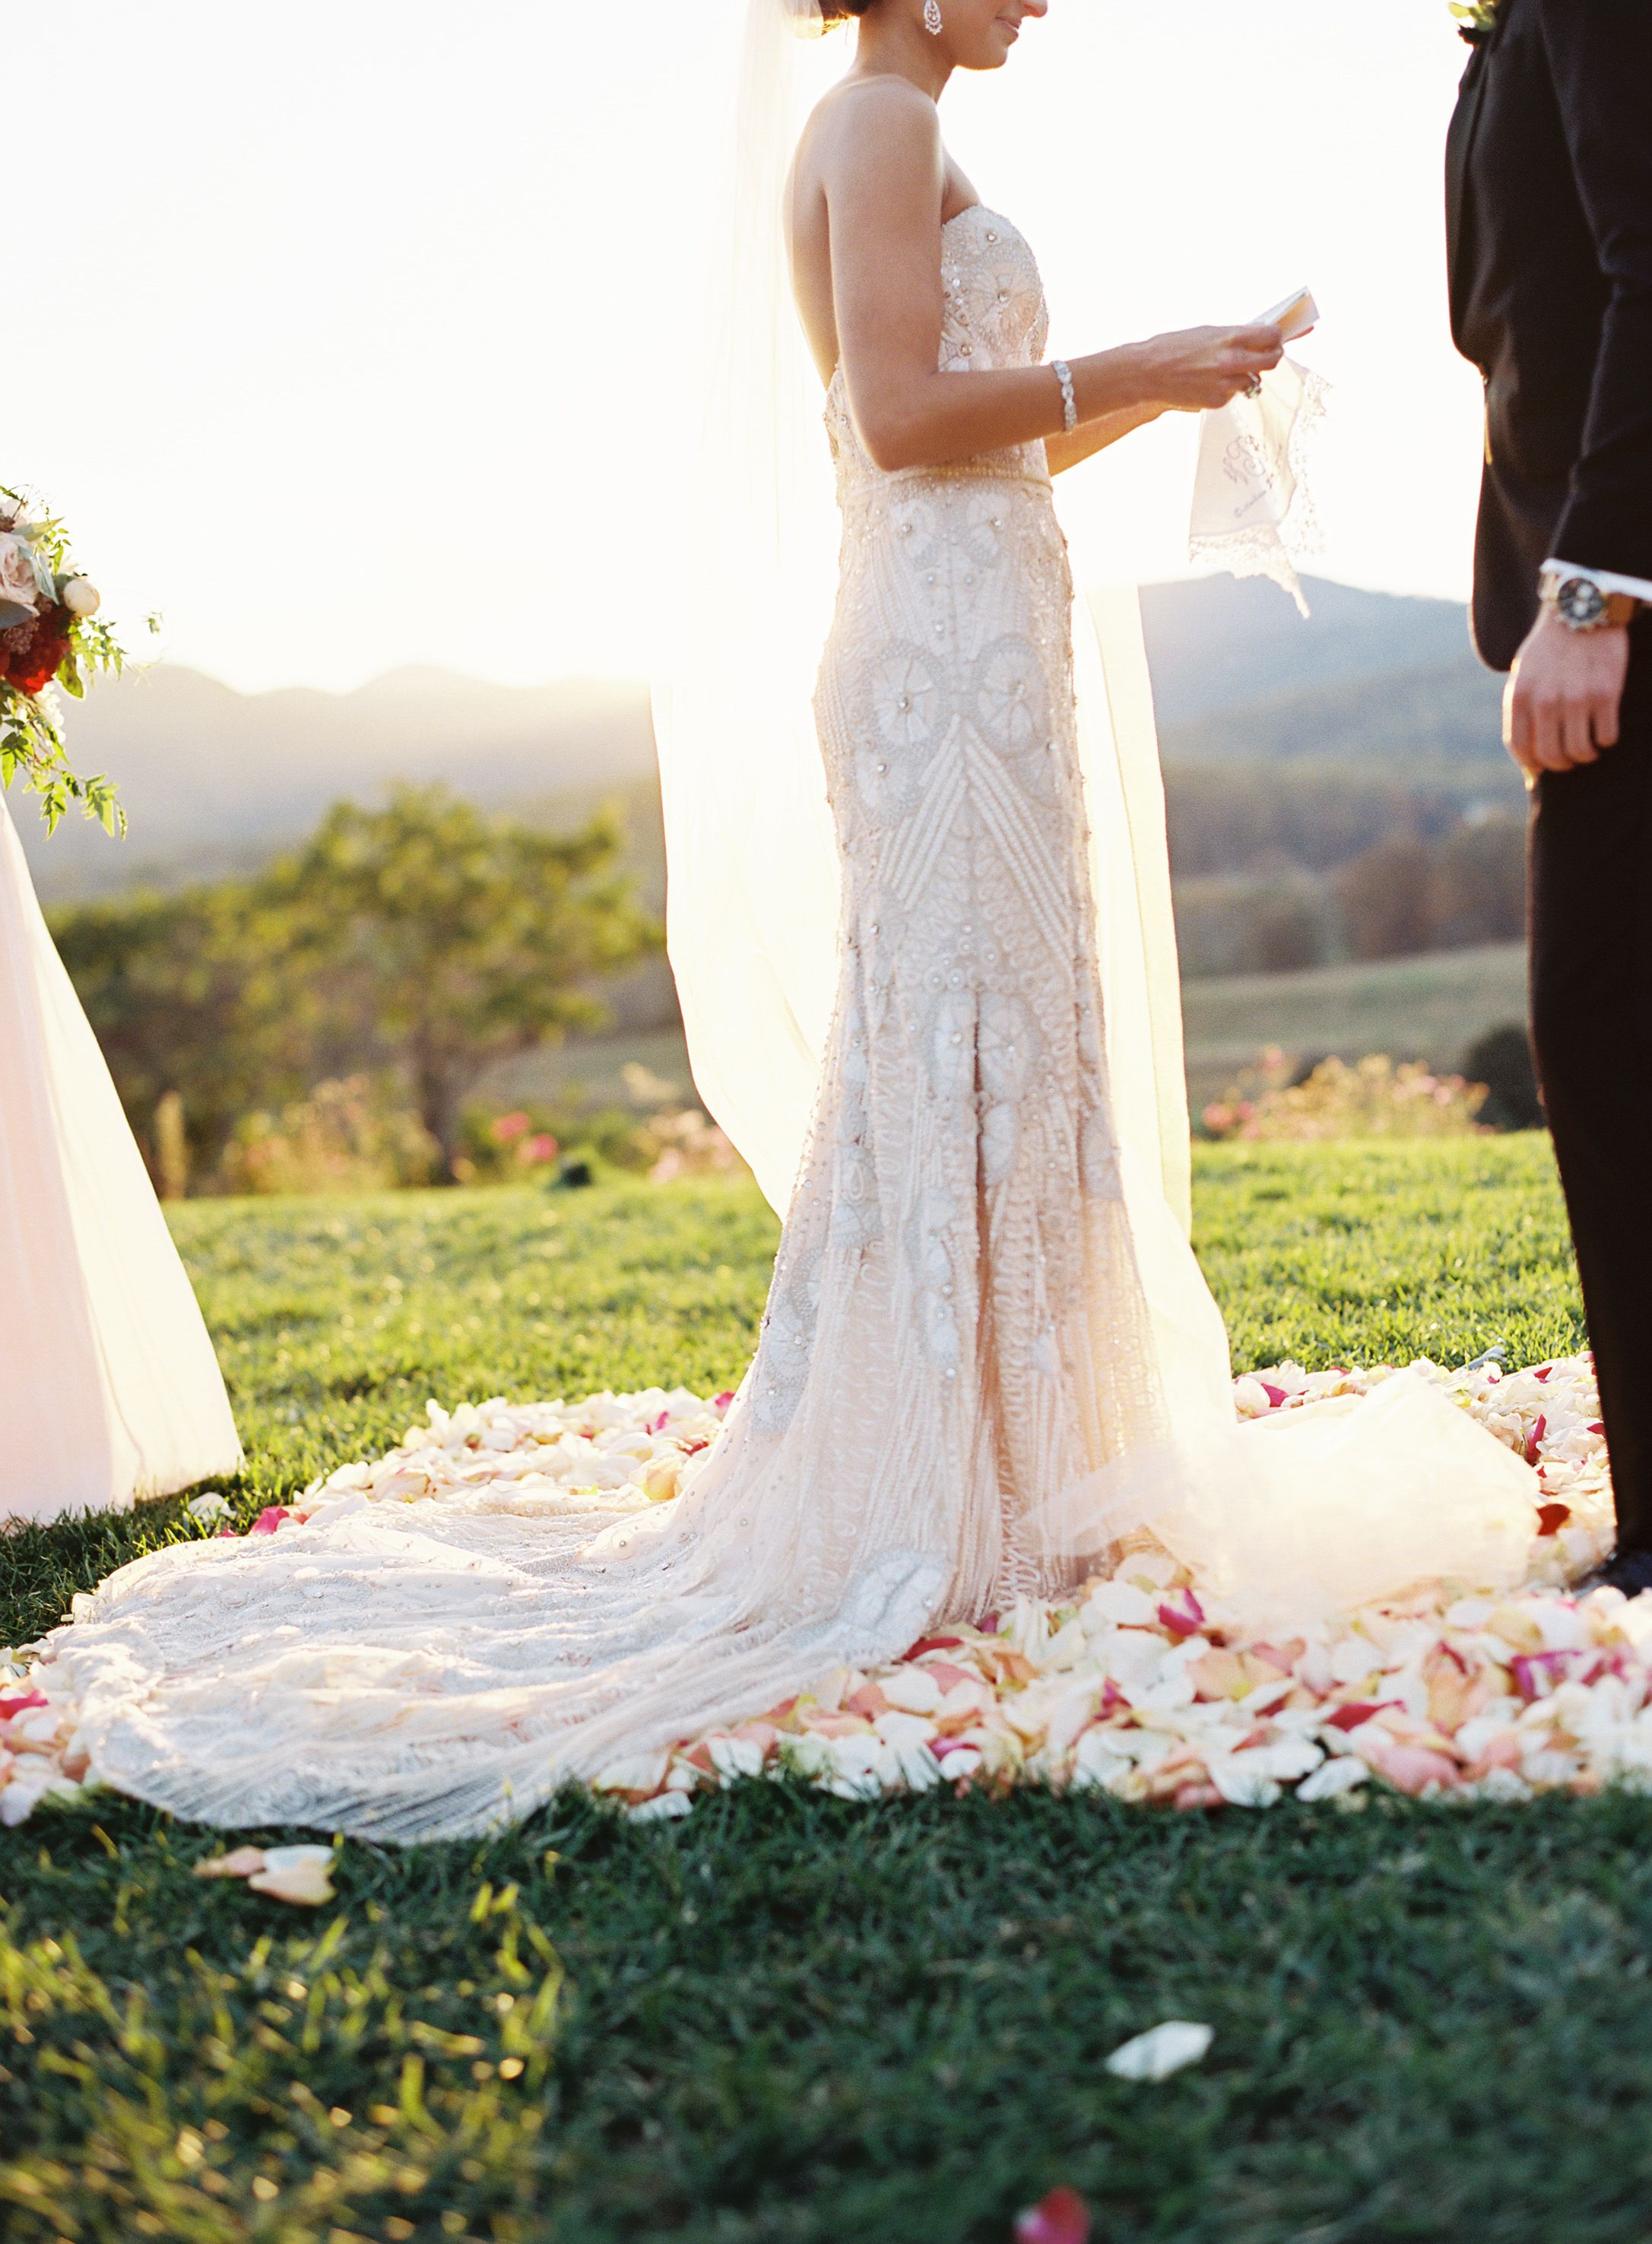 The Bride Groom Share Their Vows During Their Fall Wedding Ceremony At Pippin Hill Wedding Dresses Lace Fall Wedding Ceremony